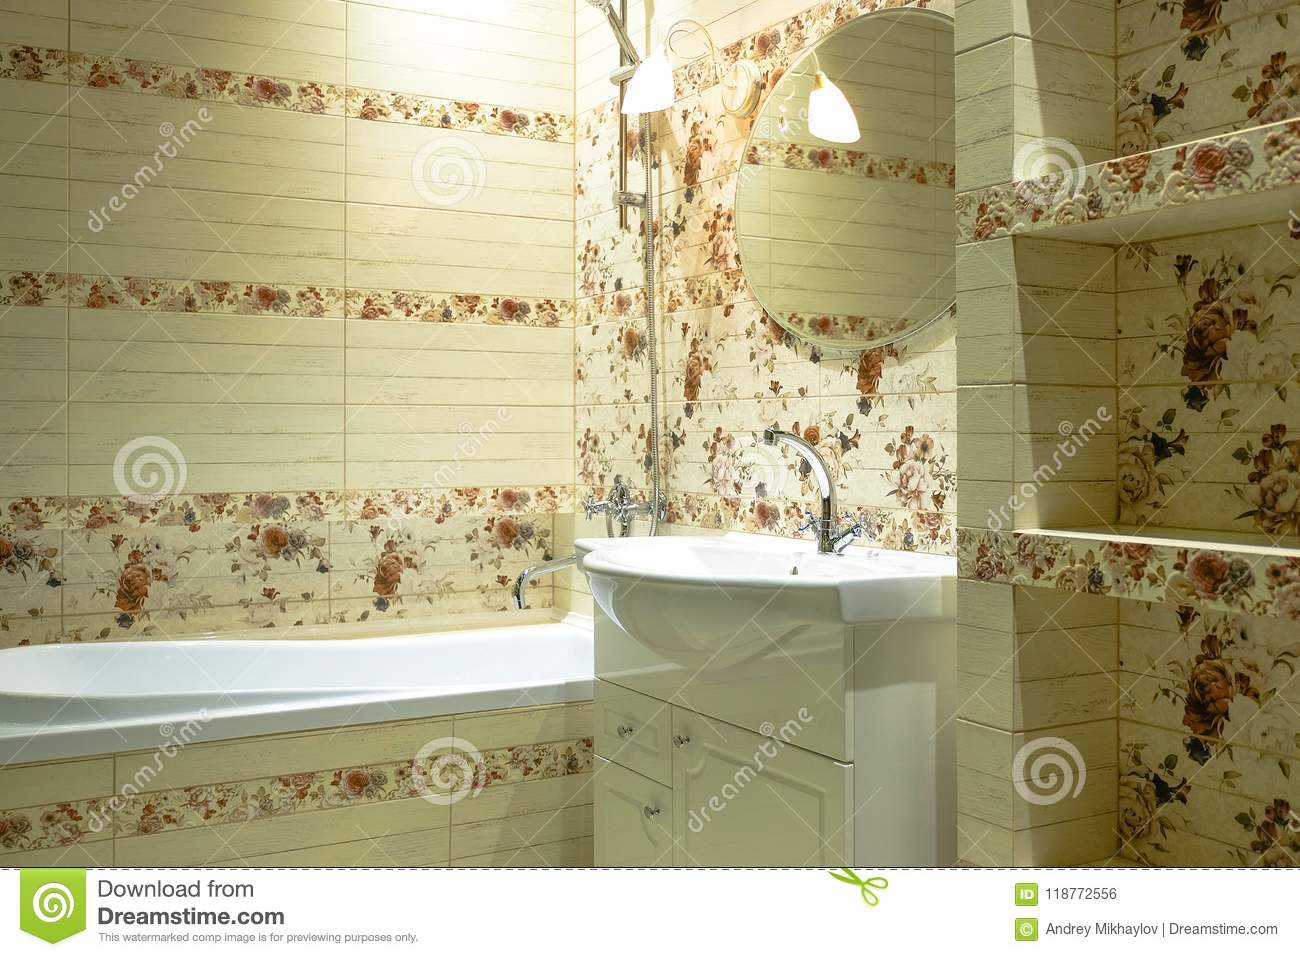 Wall Decoration With Ceramic Tiles In The Bathroom Stock Photo ...